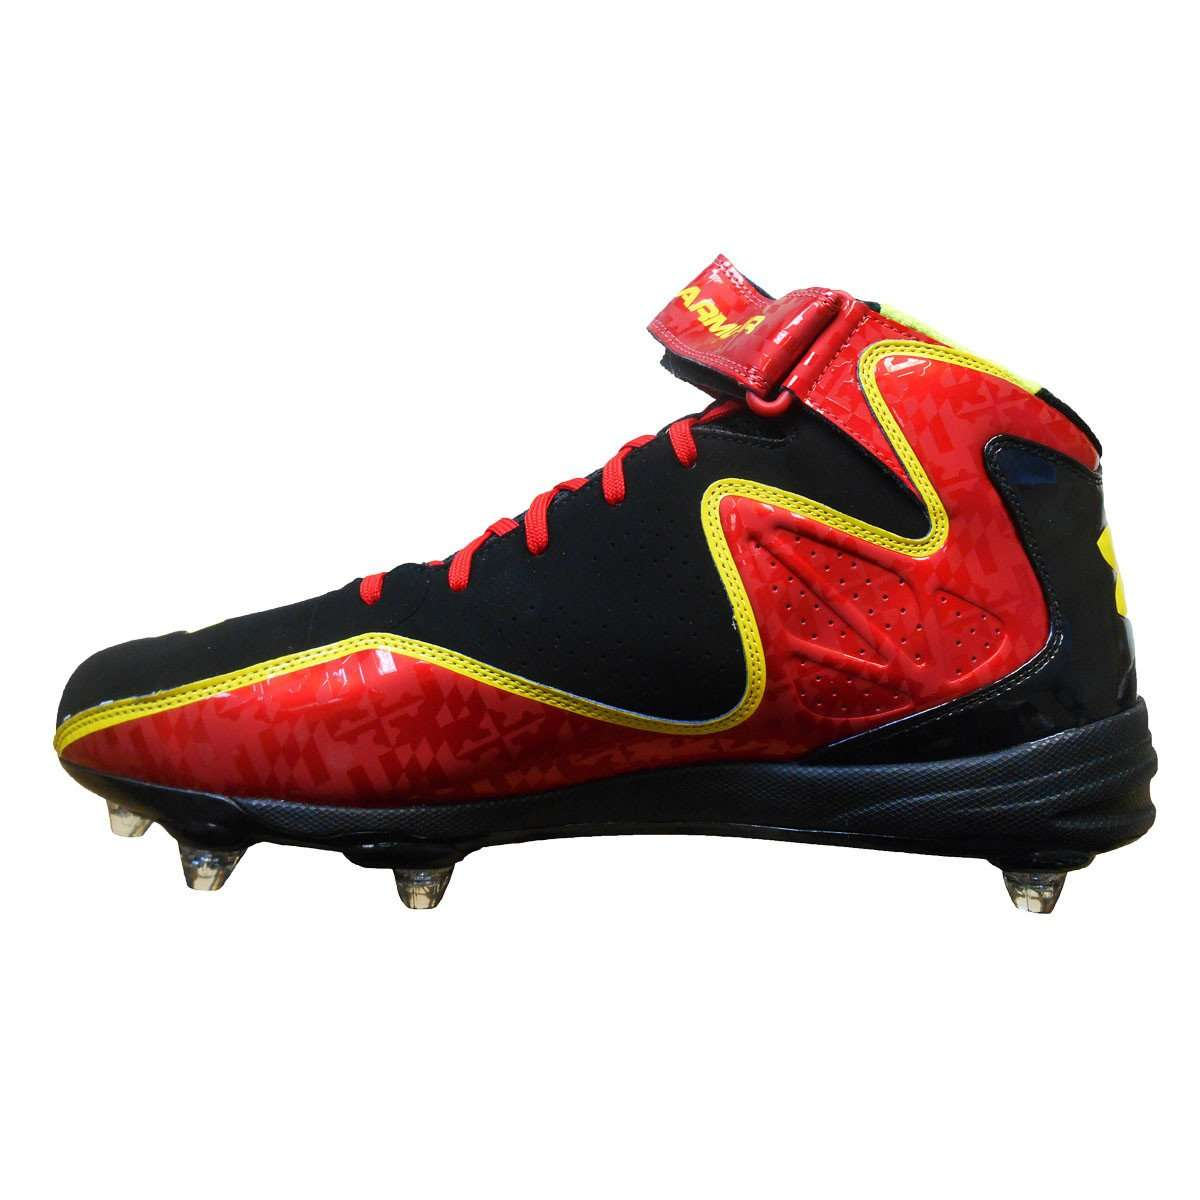 0c65625ac ... Under Armour Team Renegade D Com Wide Football Cleats - League  Outfitters ...